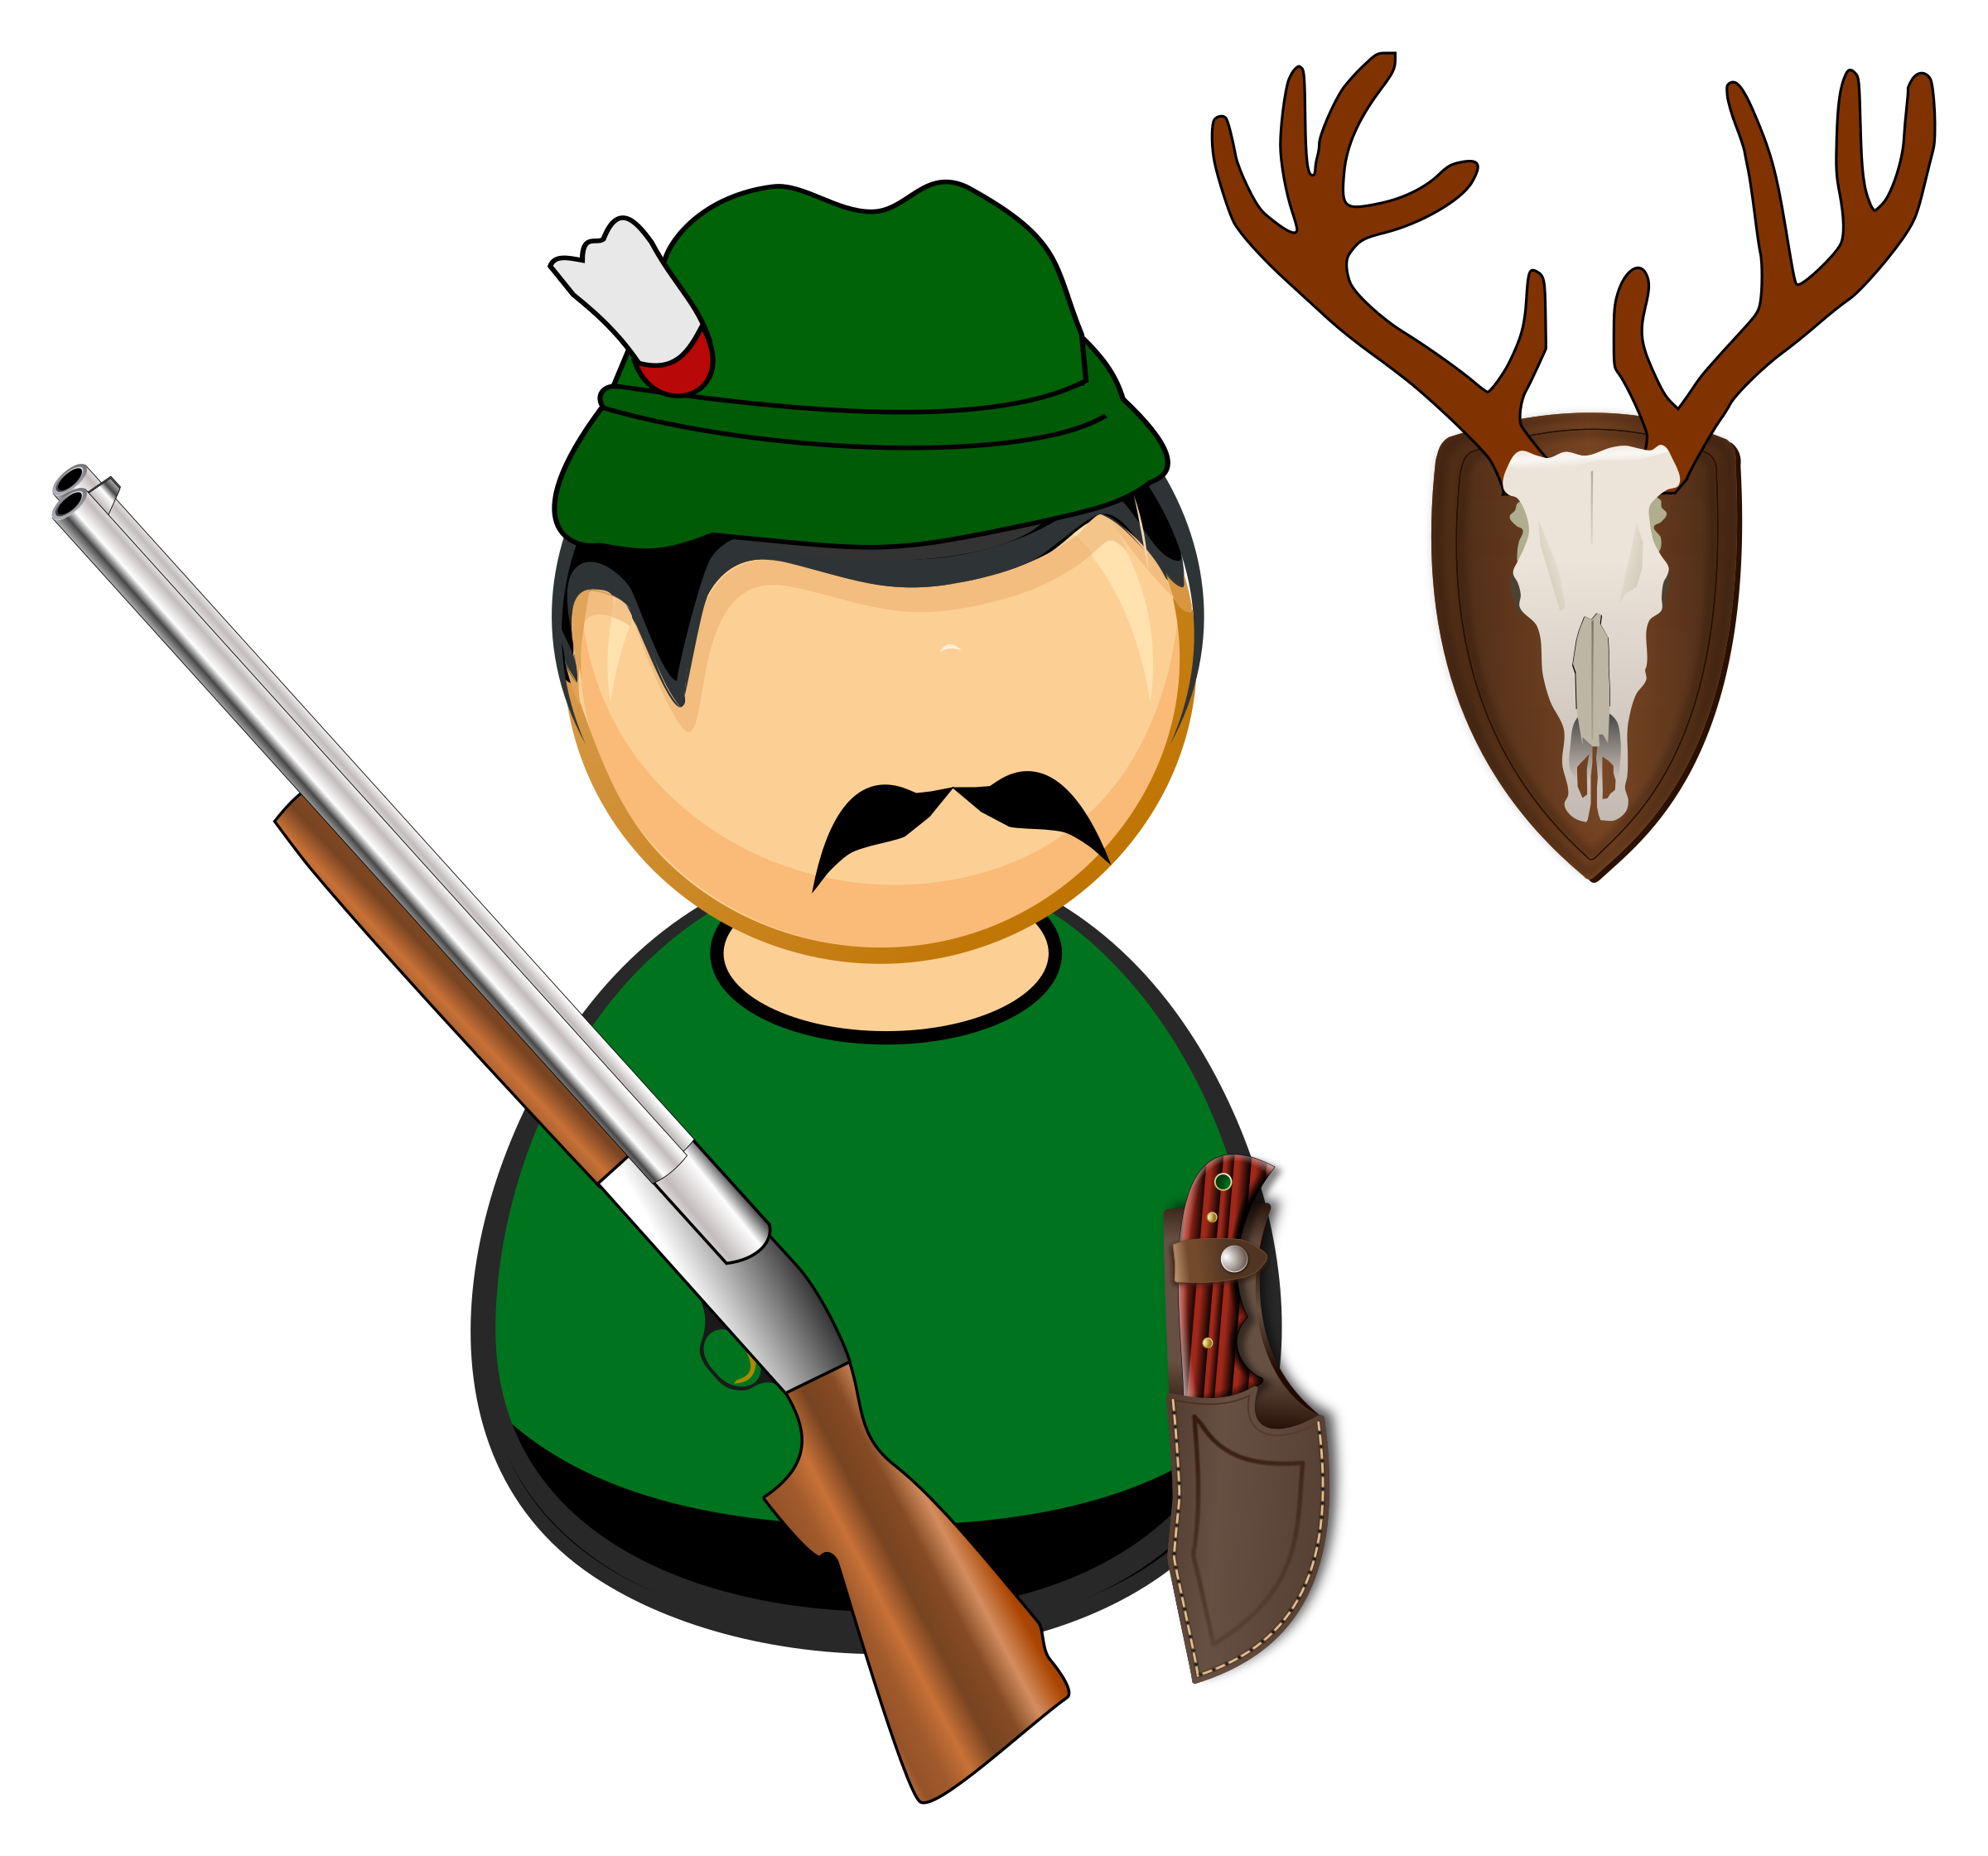 Hunter / gamekeeper by Juhele